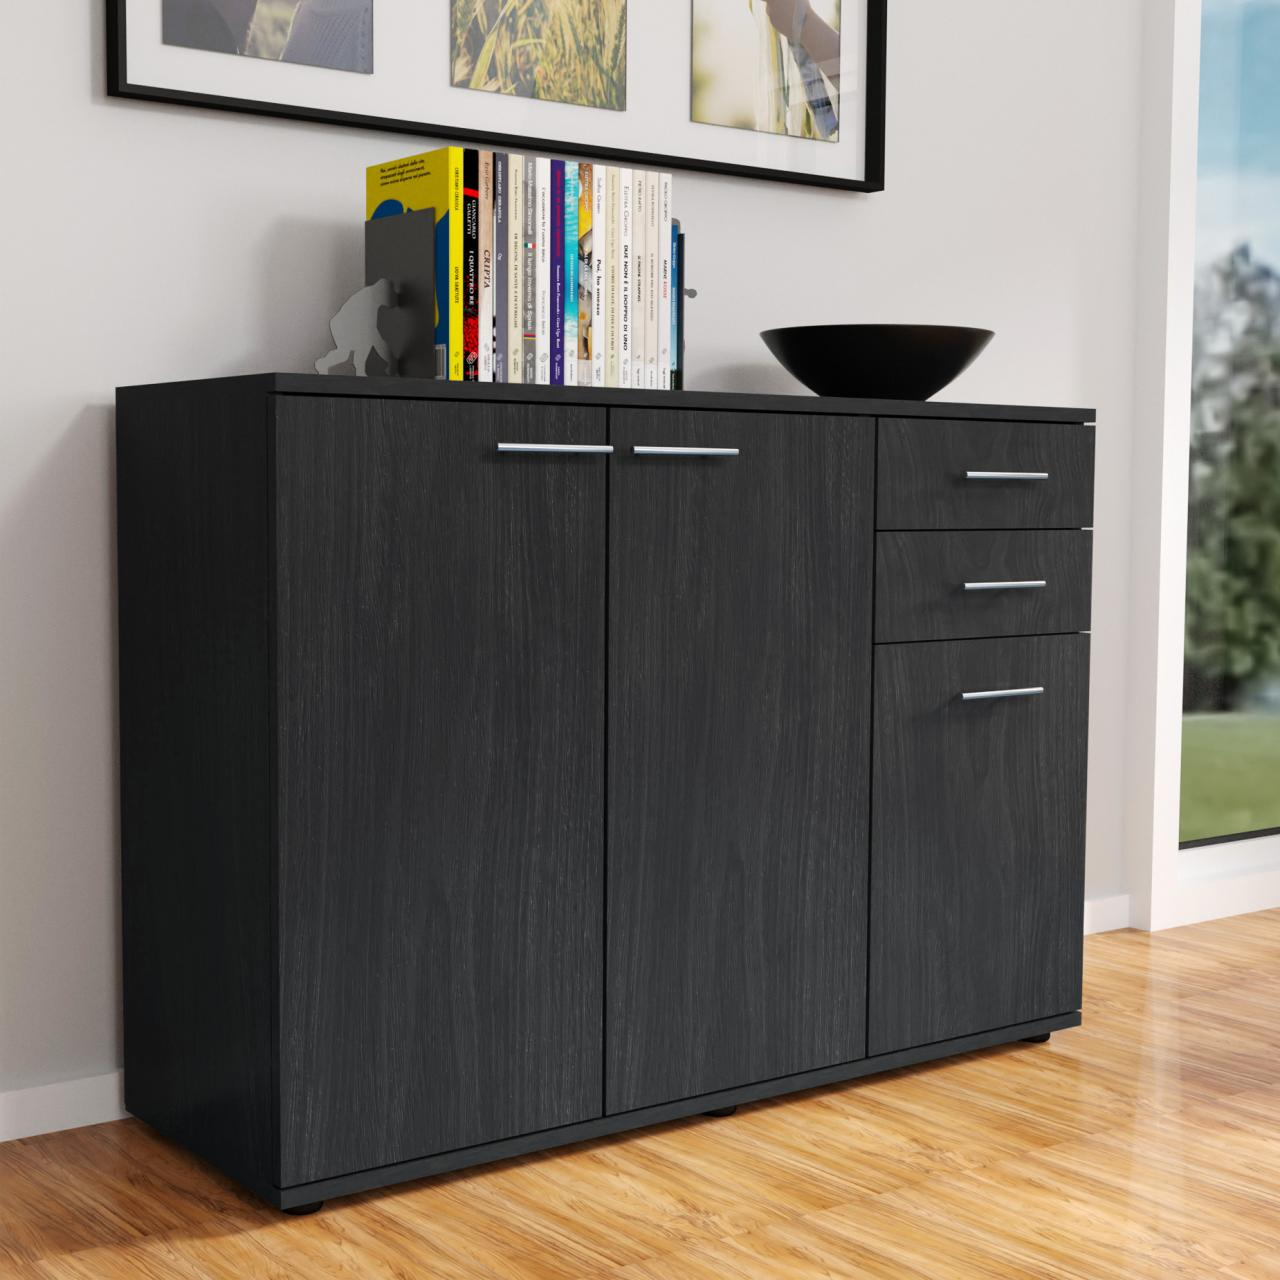 moderne kommode sideboard highboard mehrzweckschrank anrichte weiss eiche grau ebay. Black Bedroom Furniture Sets. Home Design Ideas